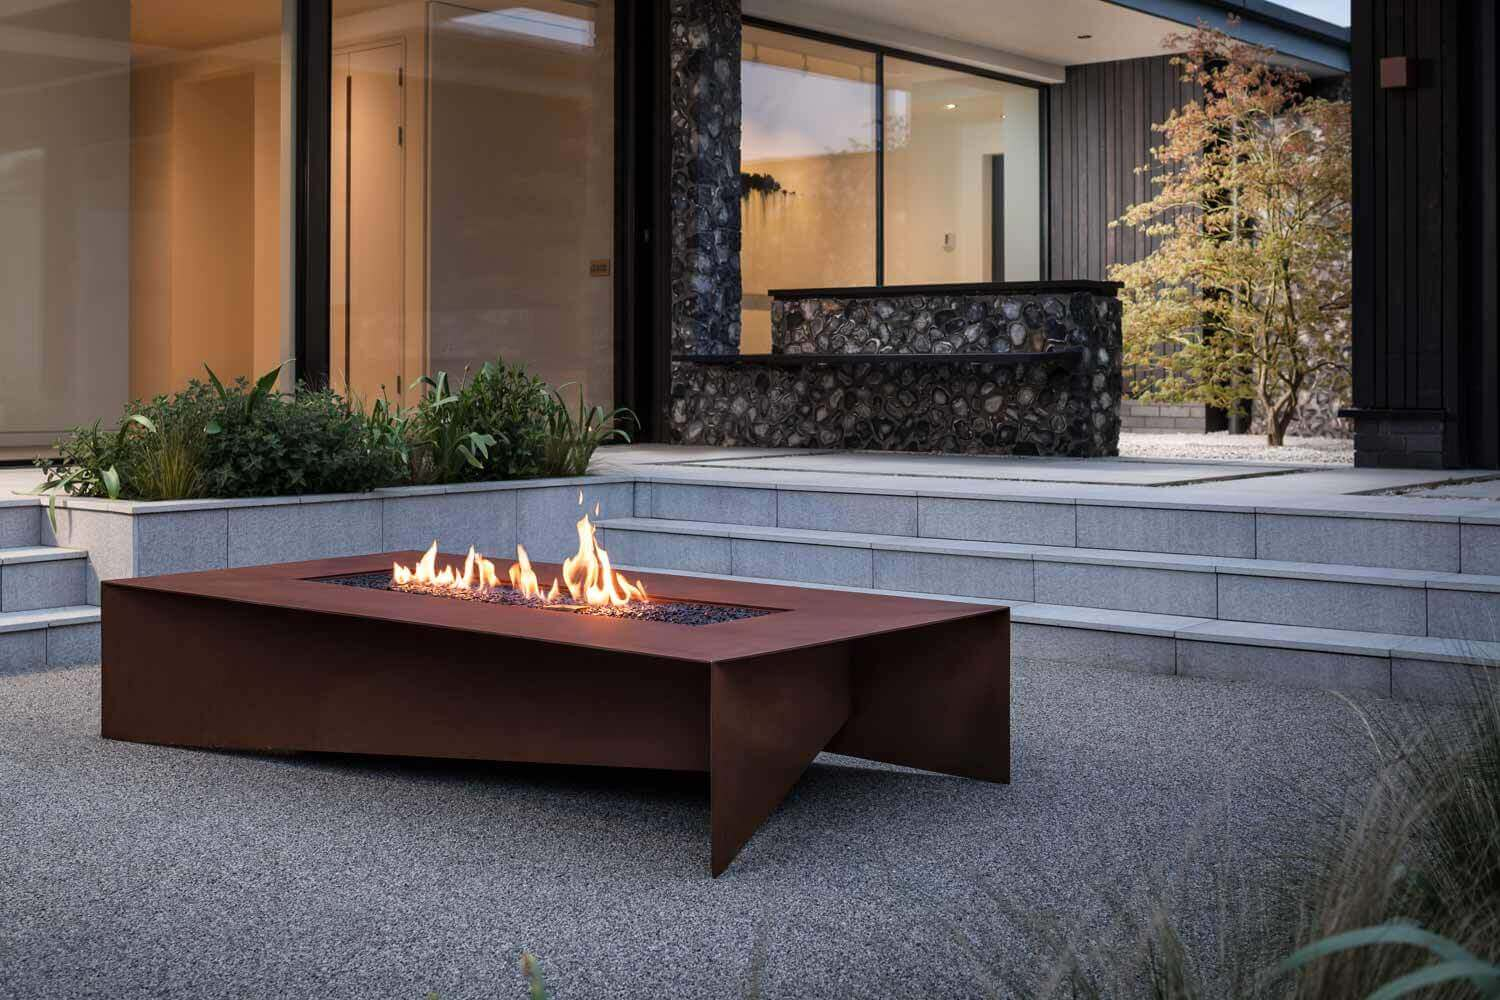 Cool Metal Fire Pit Designs to Warm Up Your Backyard or Patio